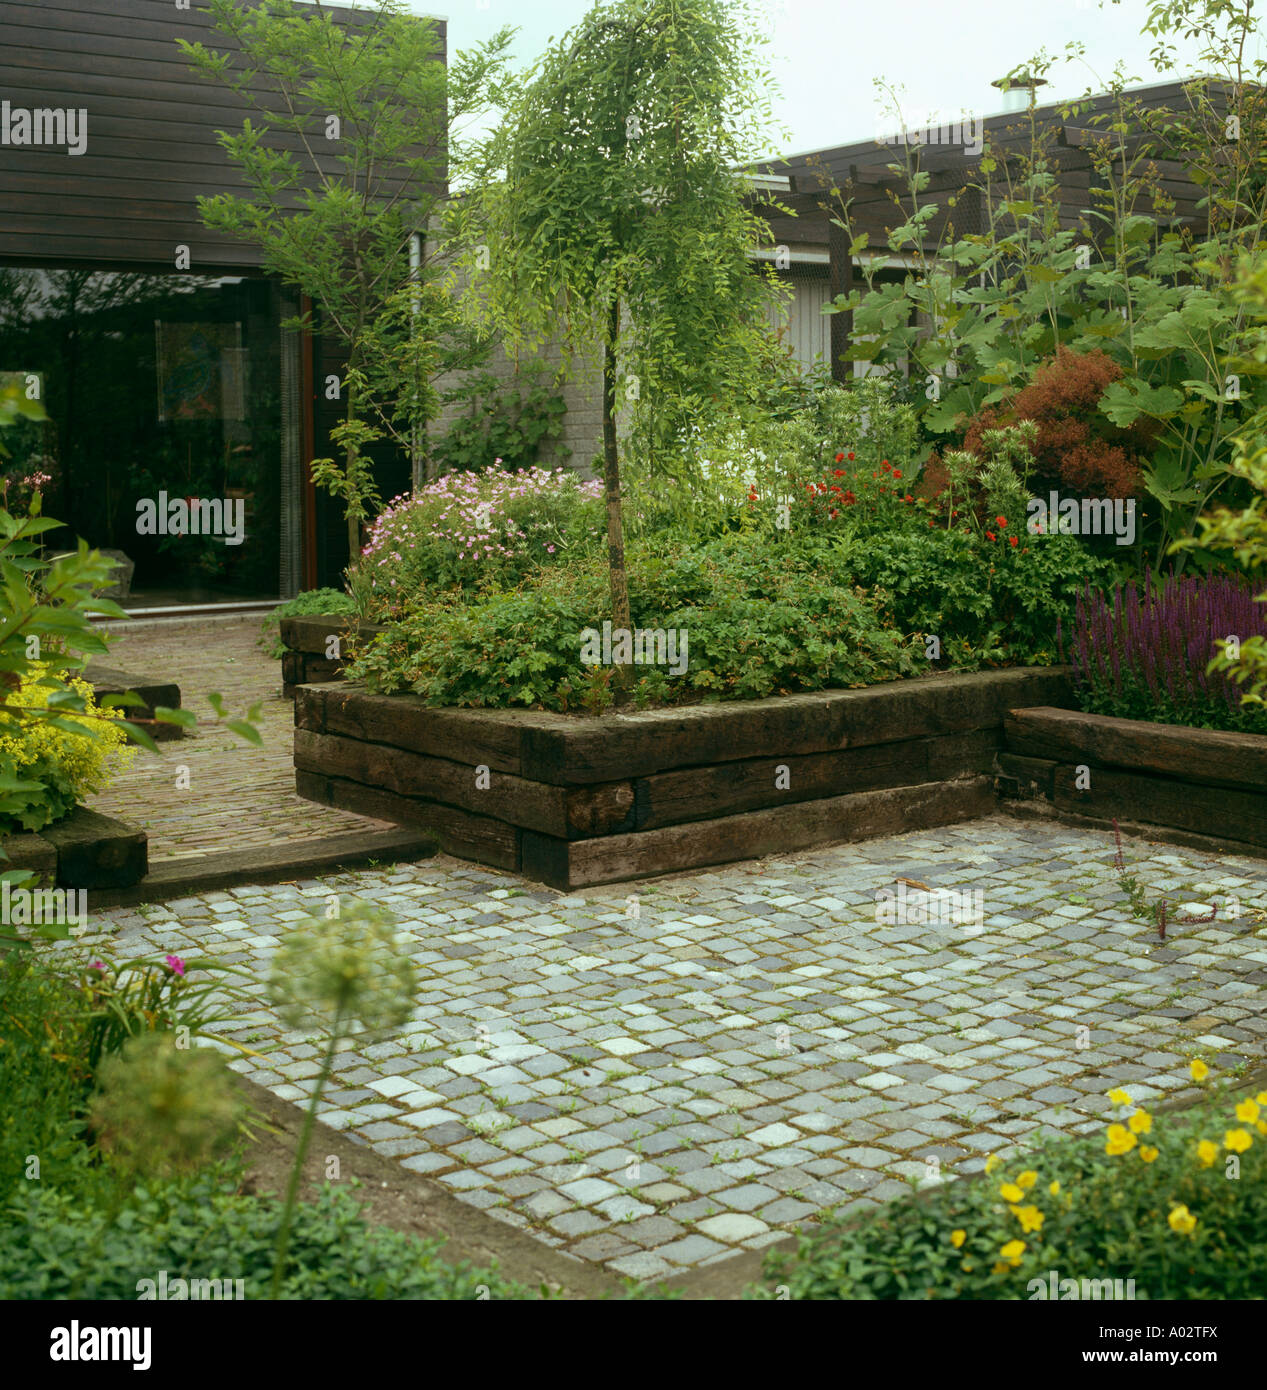 Small Tree And Shrubs In Raised Garden Beds With